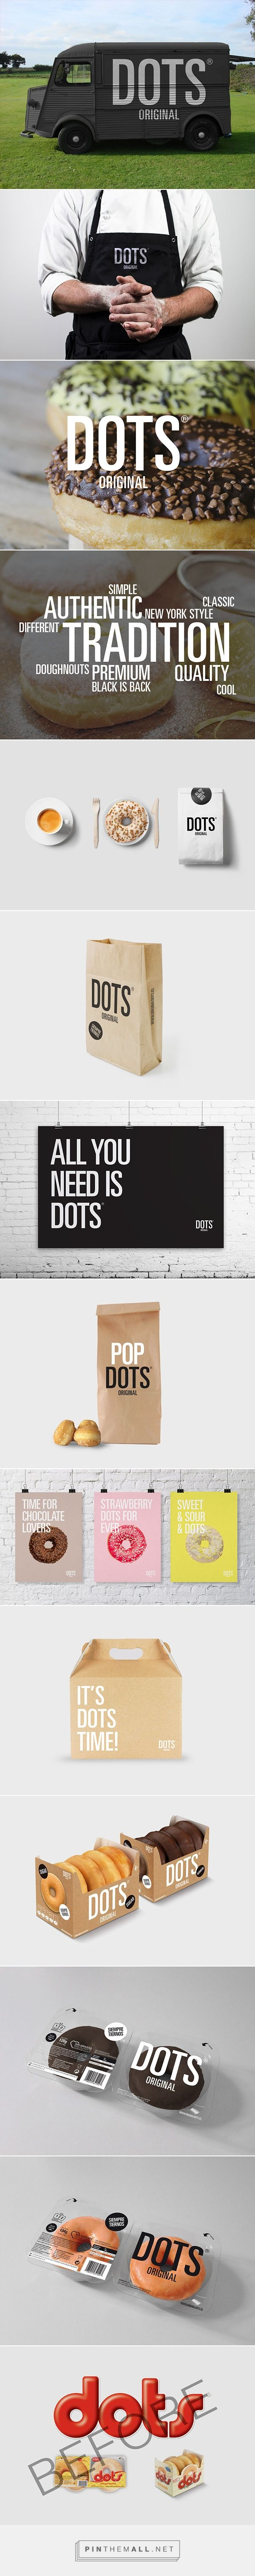 New visual #identity for Dots, Spain´s top selling doughnuts and bakery #brand